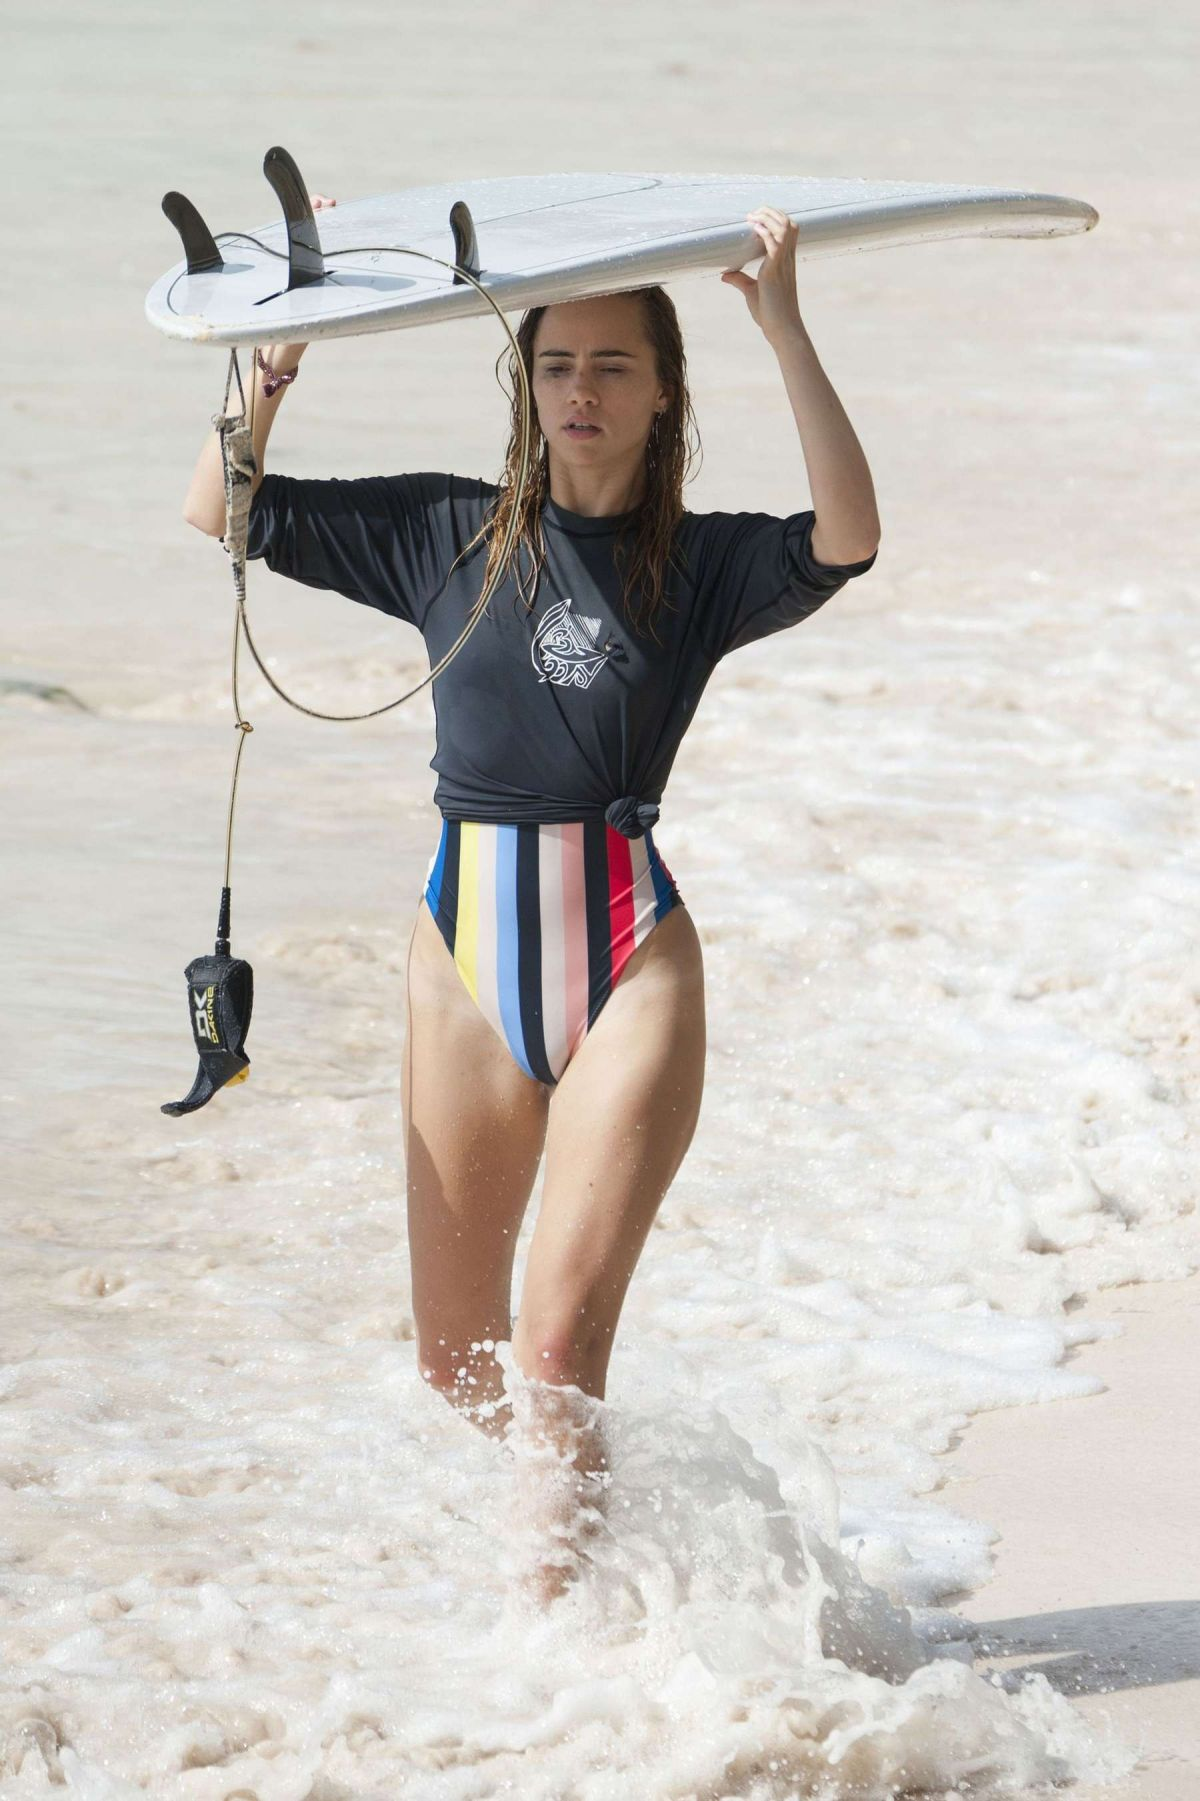 SUKI WATERHOUSE in Bikini Bottom Surfing in Barbados 01/04/2016